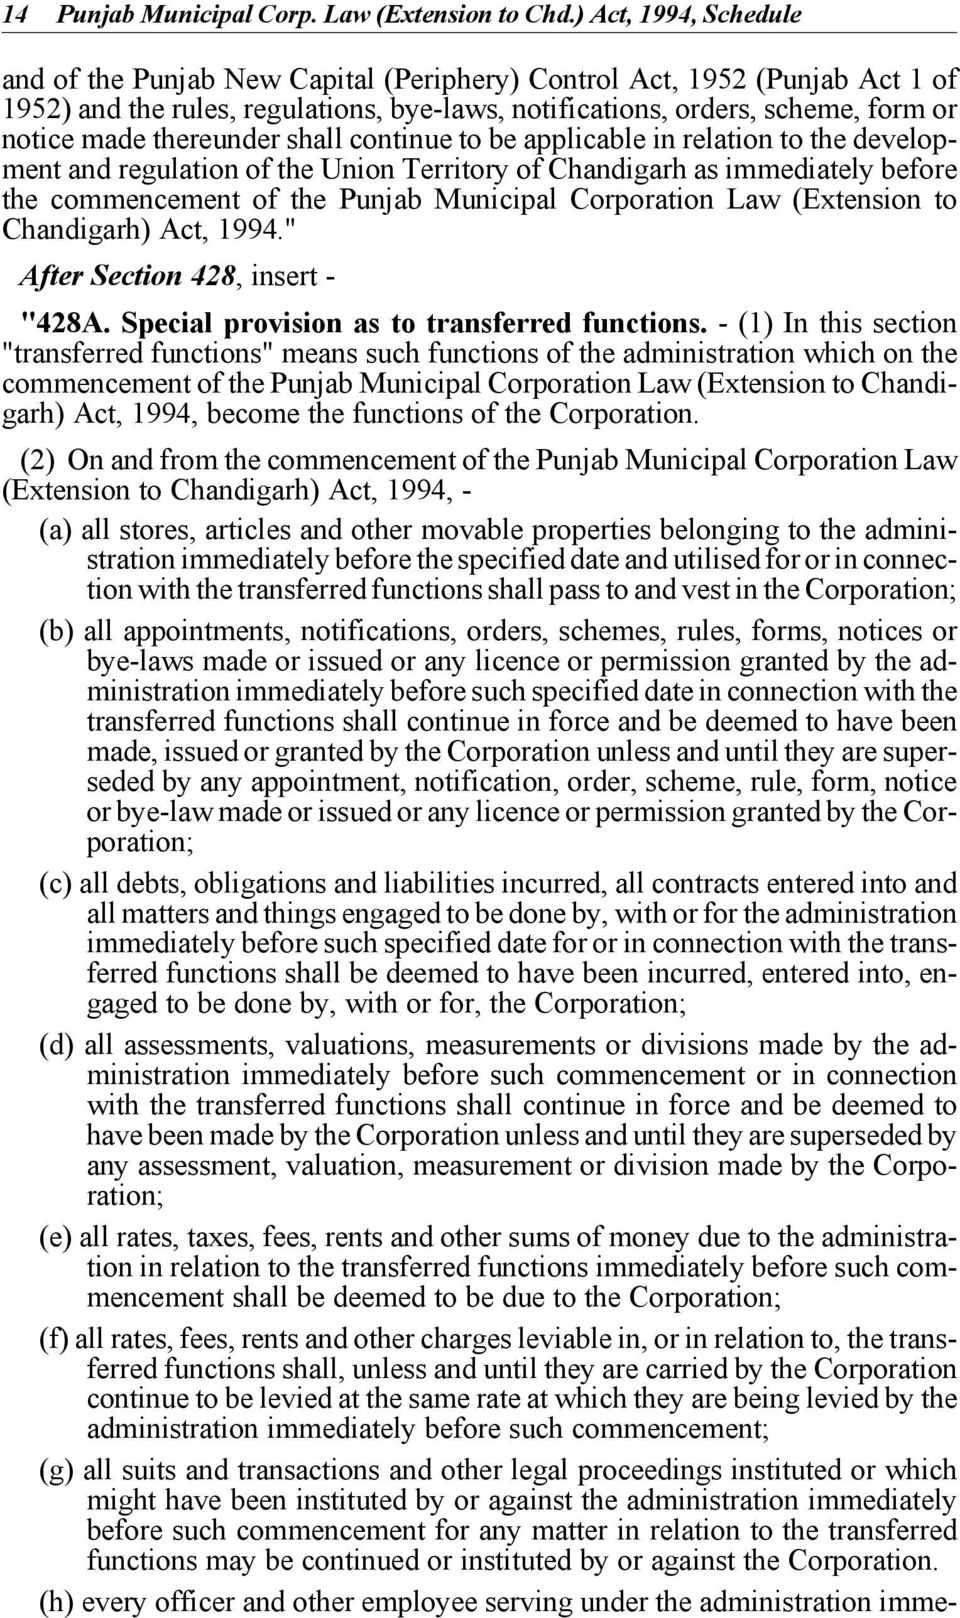 thereunder shall continue to be applicable in relation to the development and regulation of the Union Territory of Chandigarh as immediately before the commencement of the Punjab Municipal